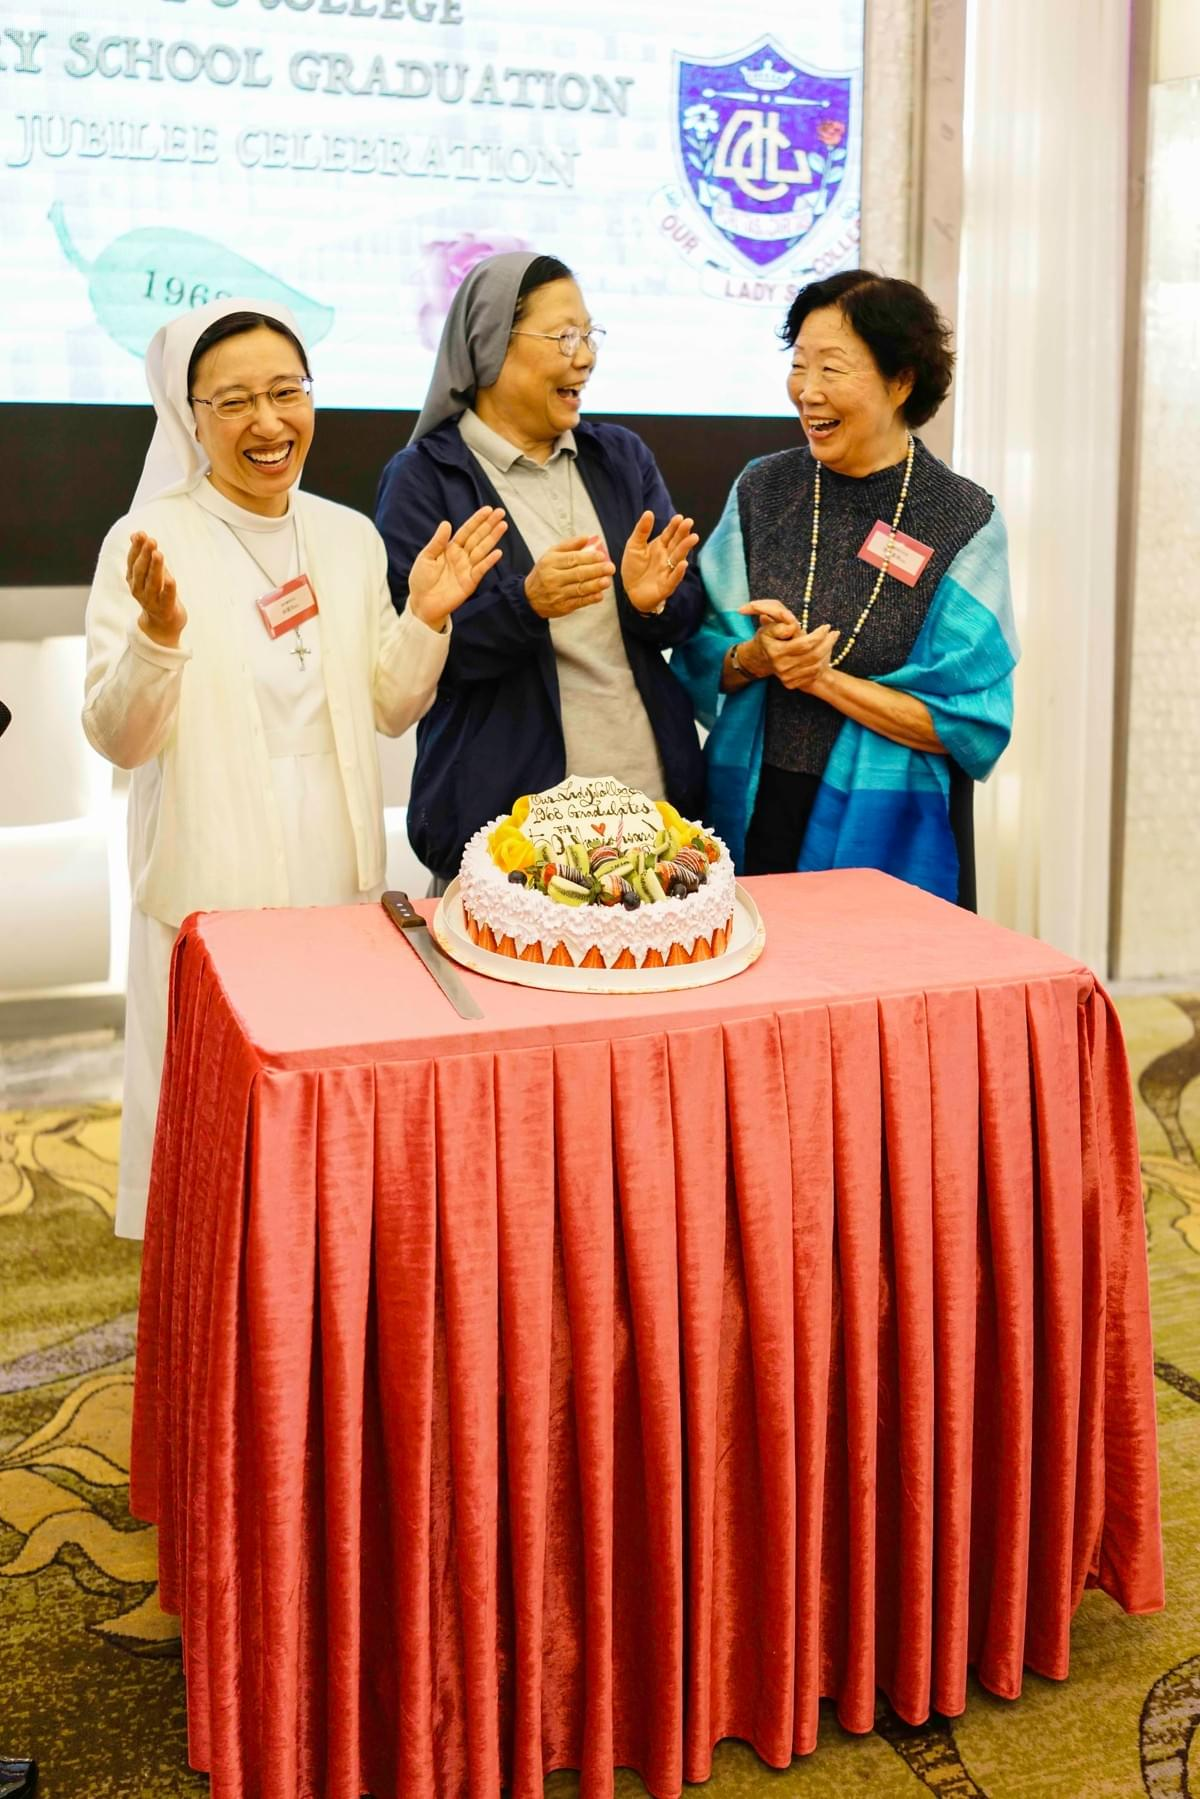 The Cake Cutting Ceremony at dinner hosted by Supervisor, Sr Tso, Principal Sr Lim and Former Principal Mrs Li of OLC